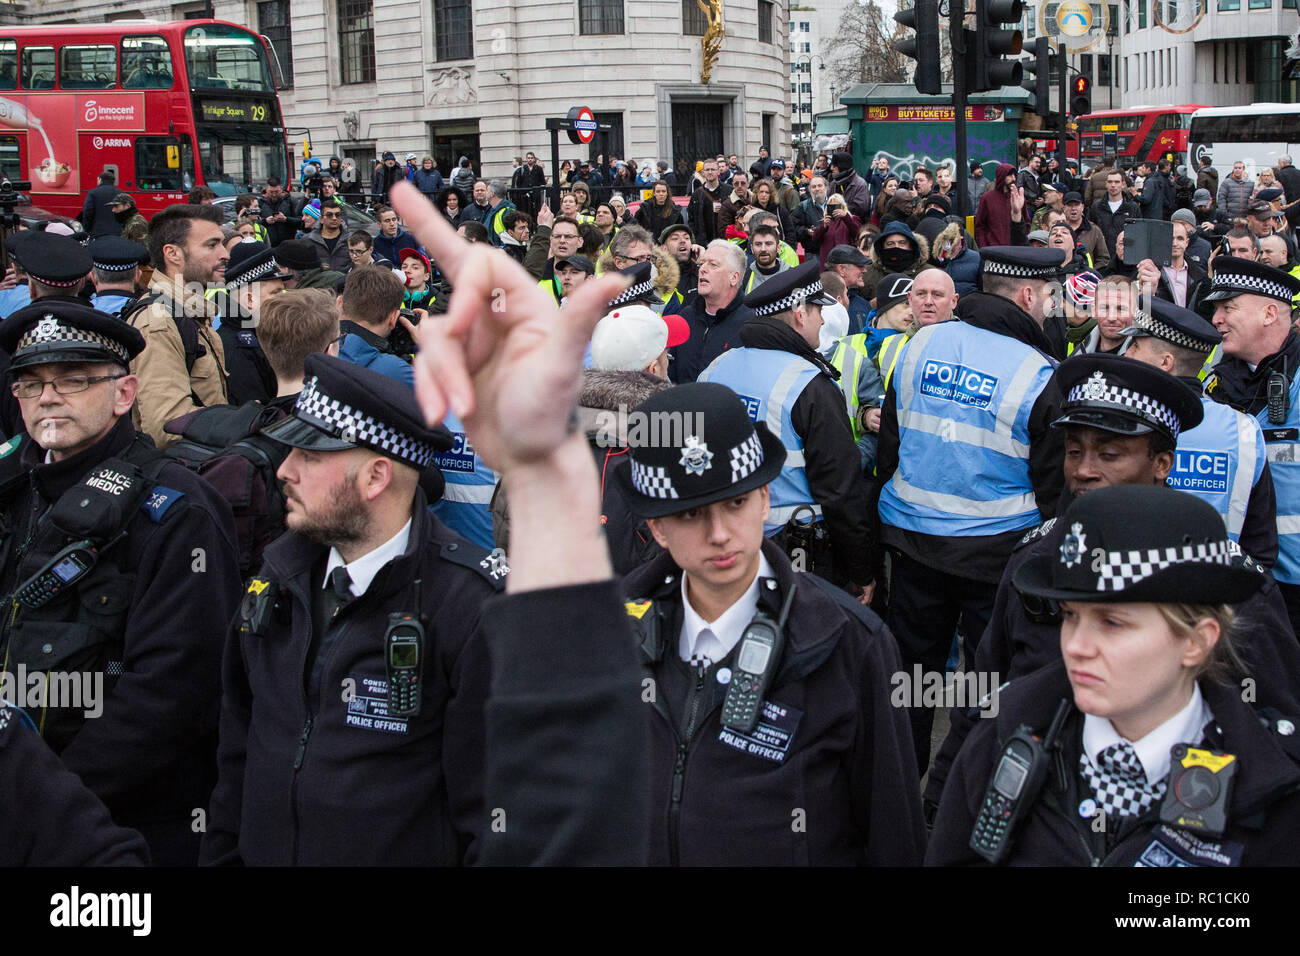 London, UK. 12th January, 2019. A woman makes a rude gesture towards around fifty supporters of far-right group Liberty Defenders being kept apart by police officers from hundreds of protesters taking part in a 'Britain is Broken: General Election Now' demonstration organised by the People's Assembly Against Austerity. Some members of both groups were wearing yellow vests in solidarity with the 'gilets jaunes' in France. Credit: Mark Kerrison/Alamy Live News - Stock Image